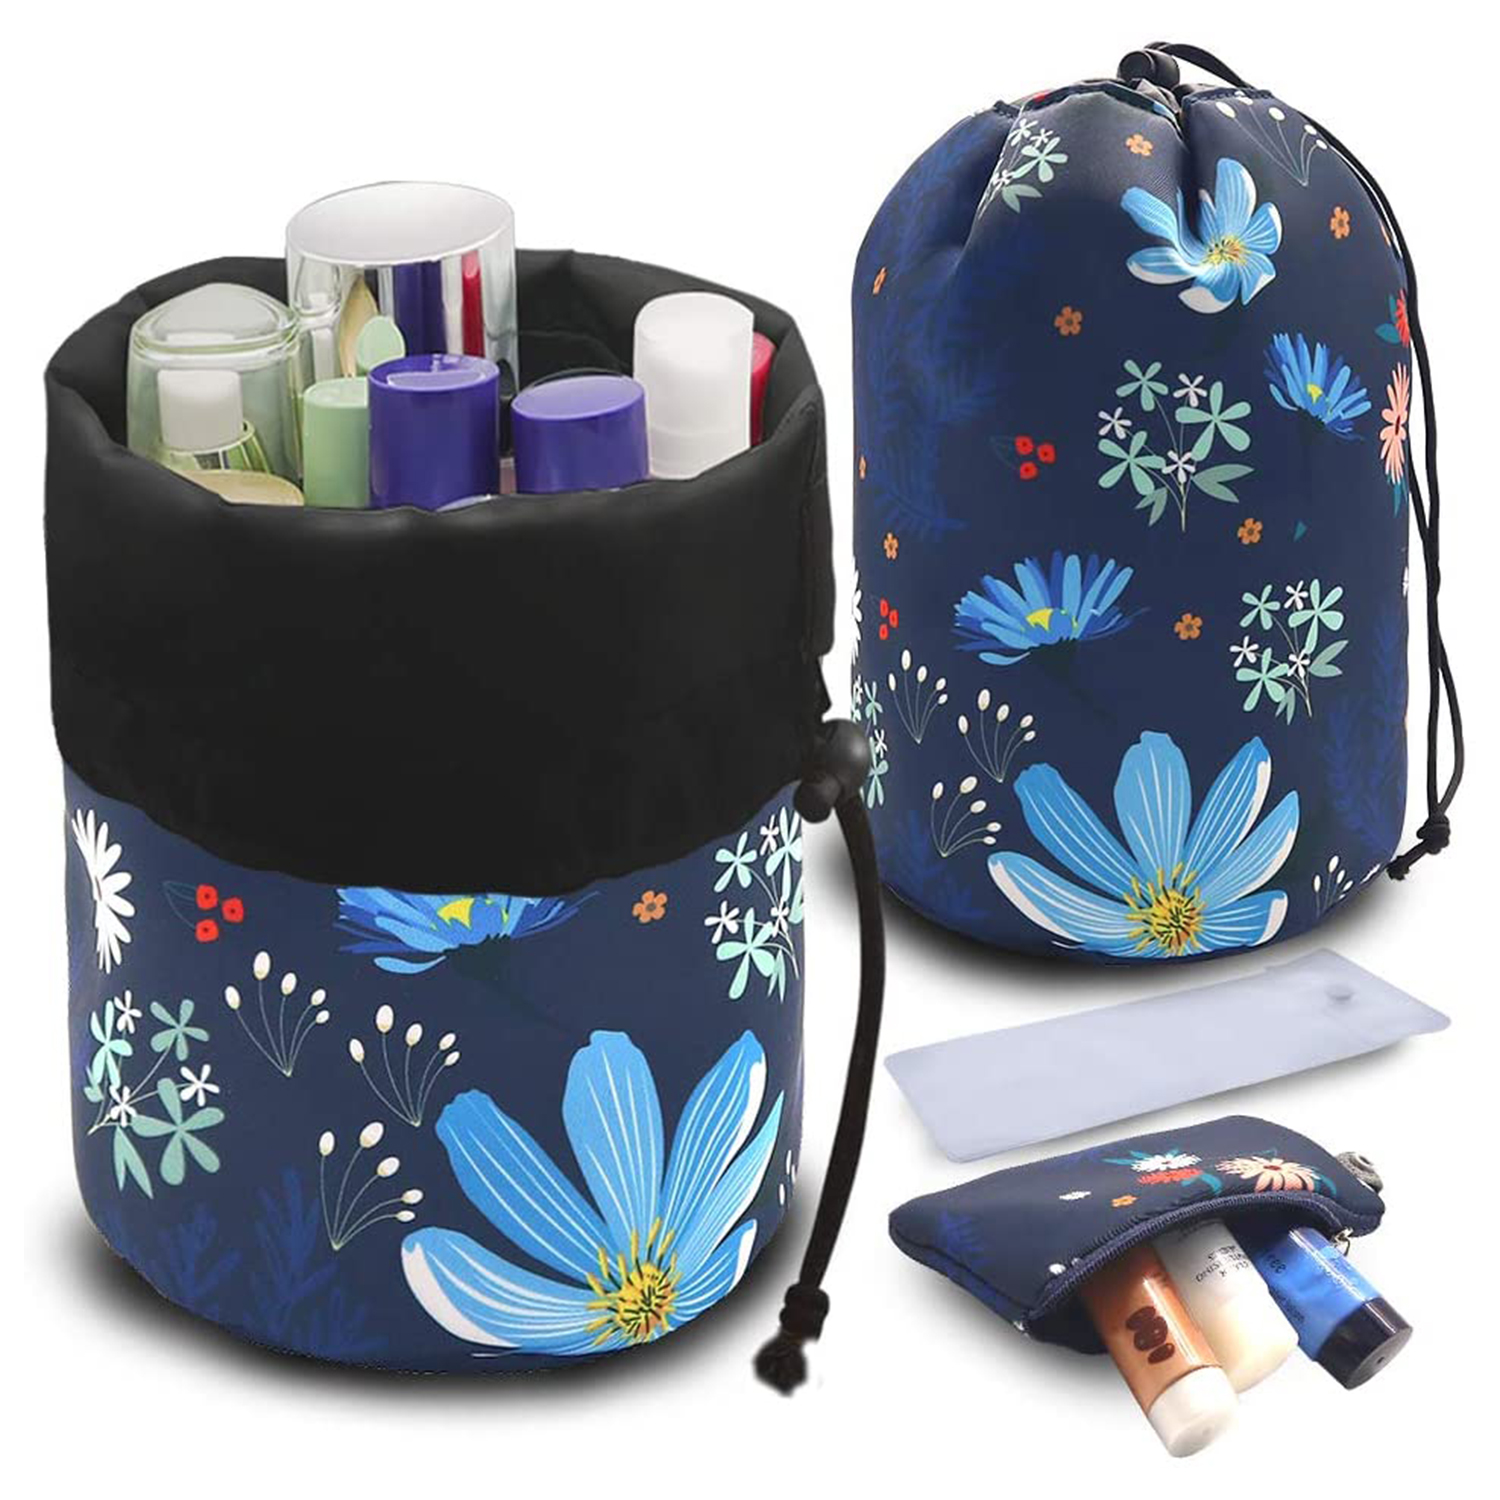 UYRIE Portable Makeup Toiletry Cosmetic Travel Organizer Bag